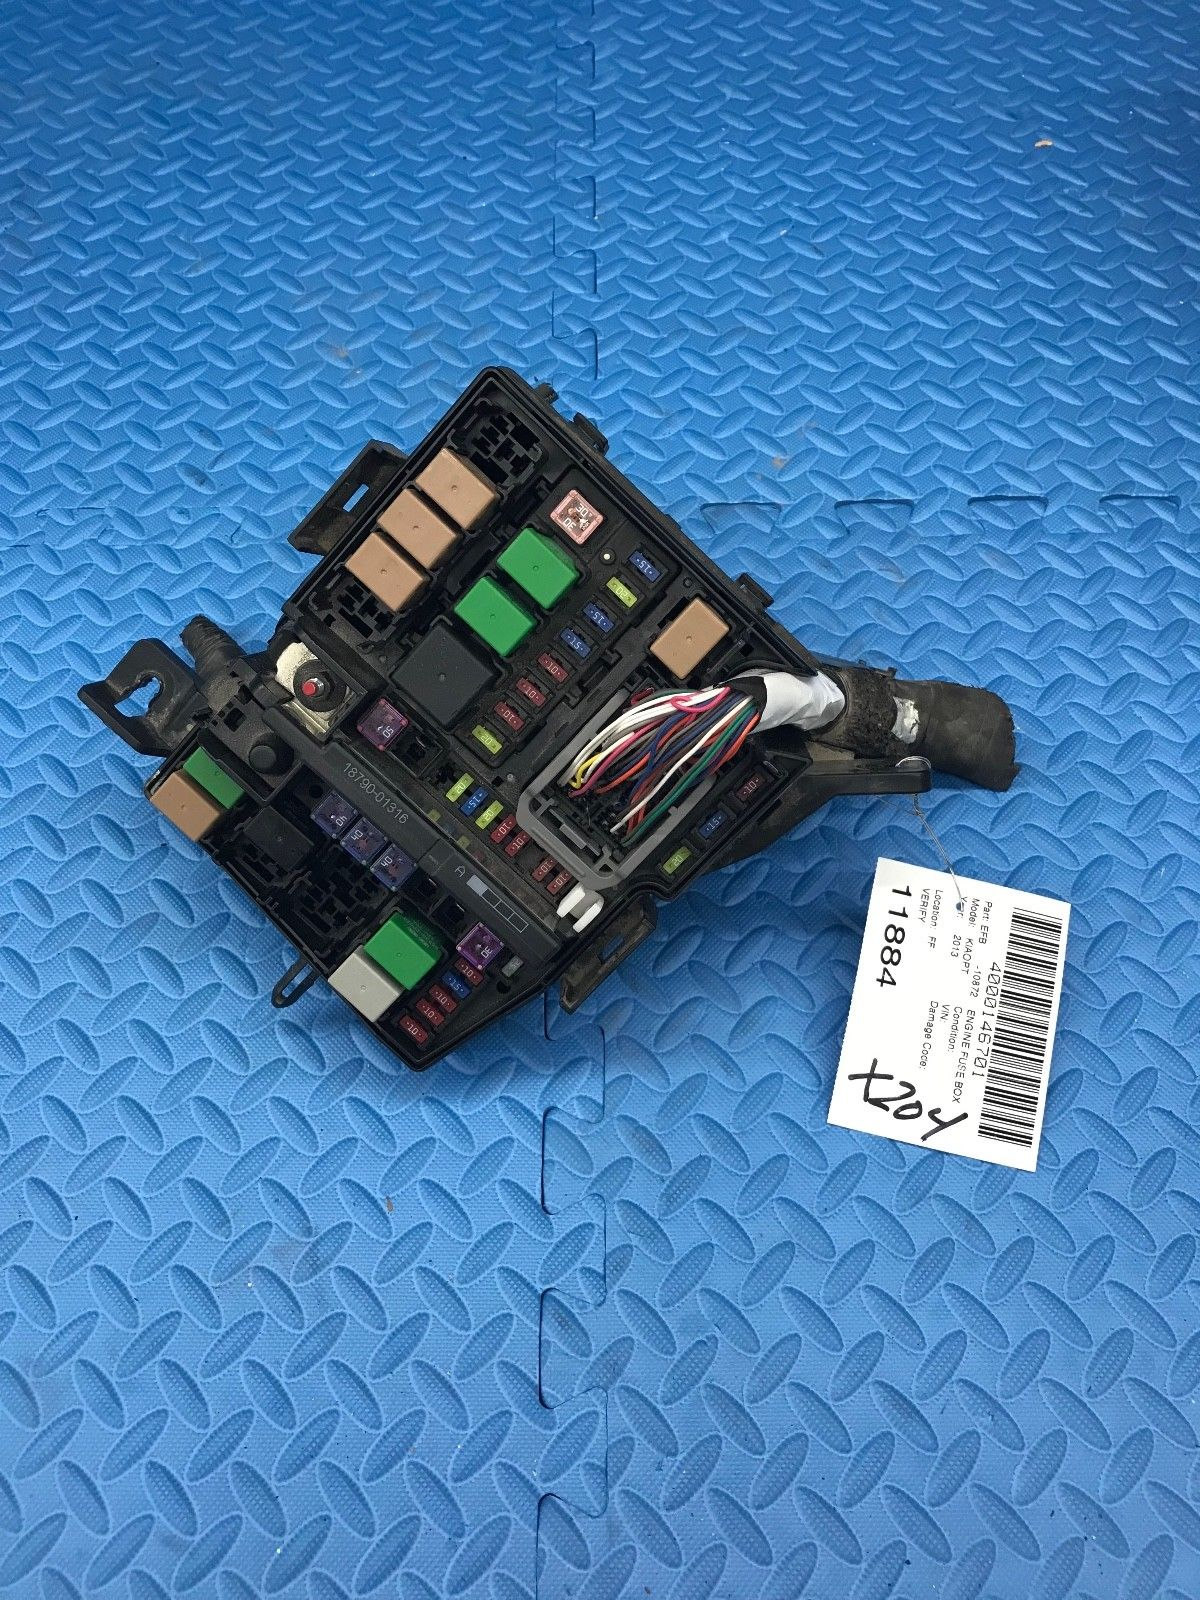 Kia Optima Part 18790 01316 Fuse Relay Wire Wiring Junction Box Vs912004c090qb Does Not Apply